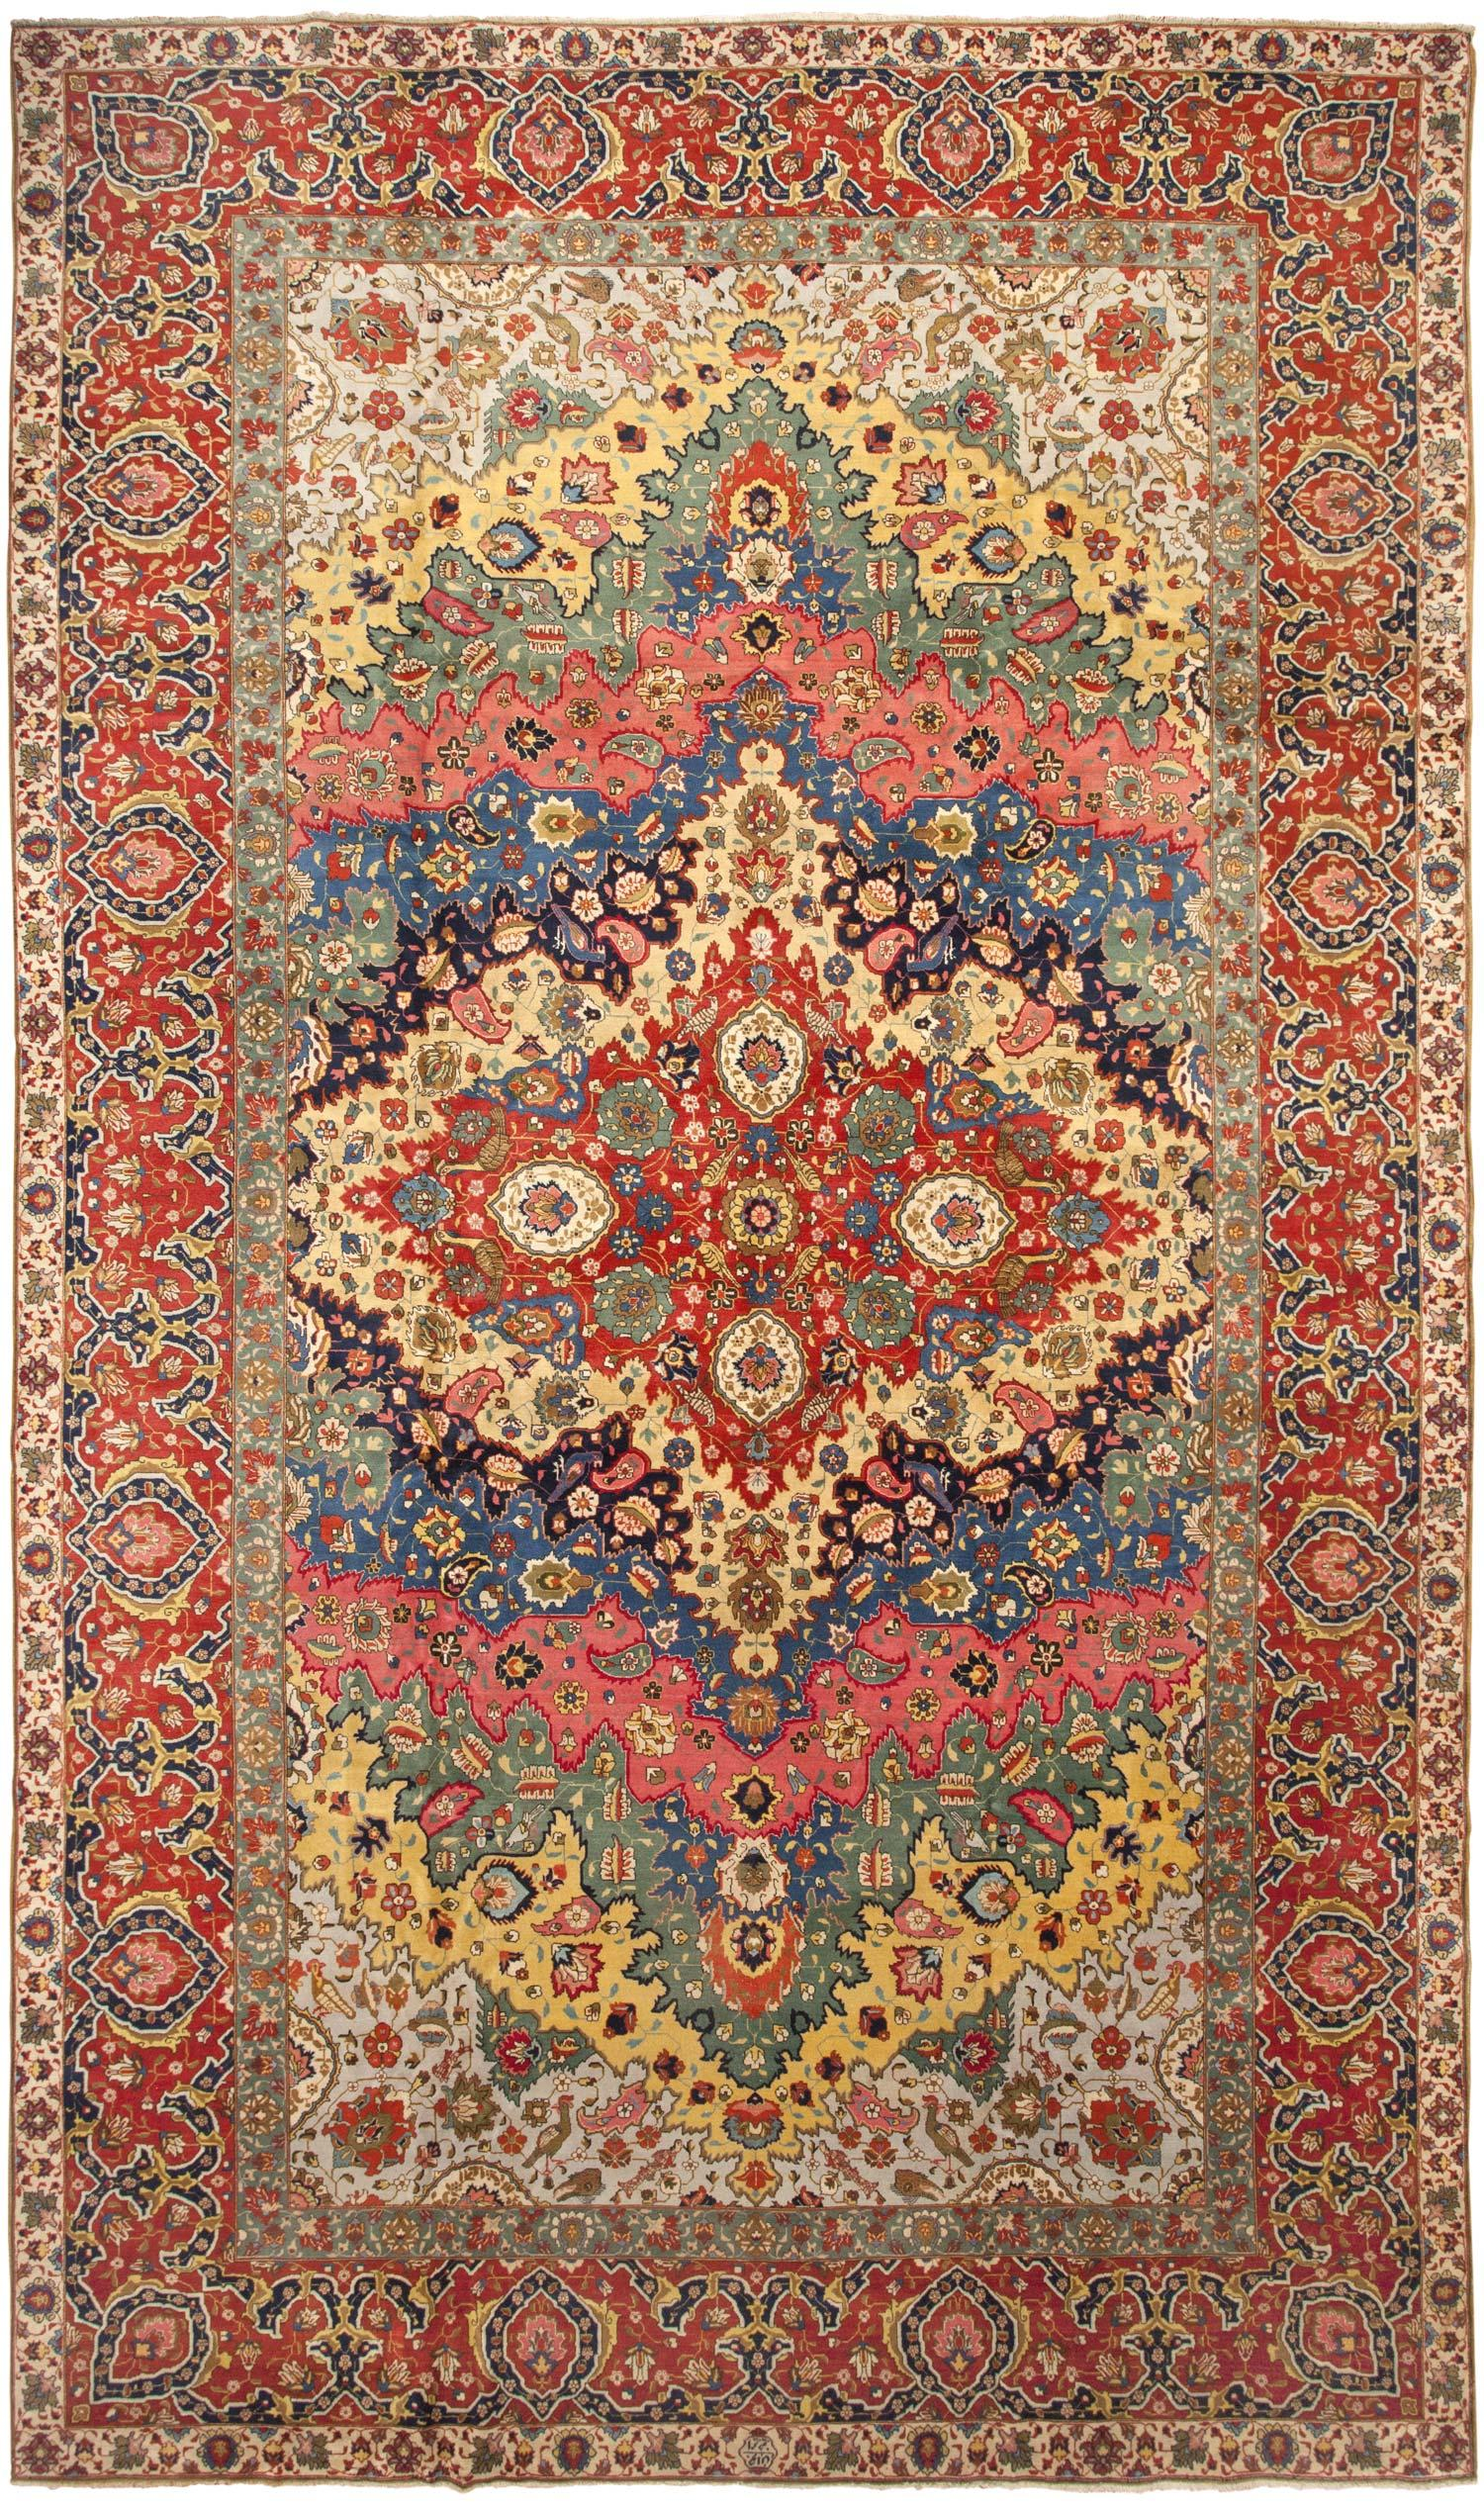 Antique Persian Tabriz with Green Detail